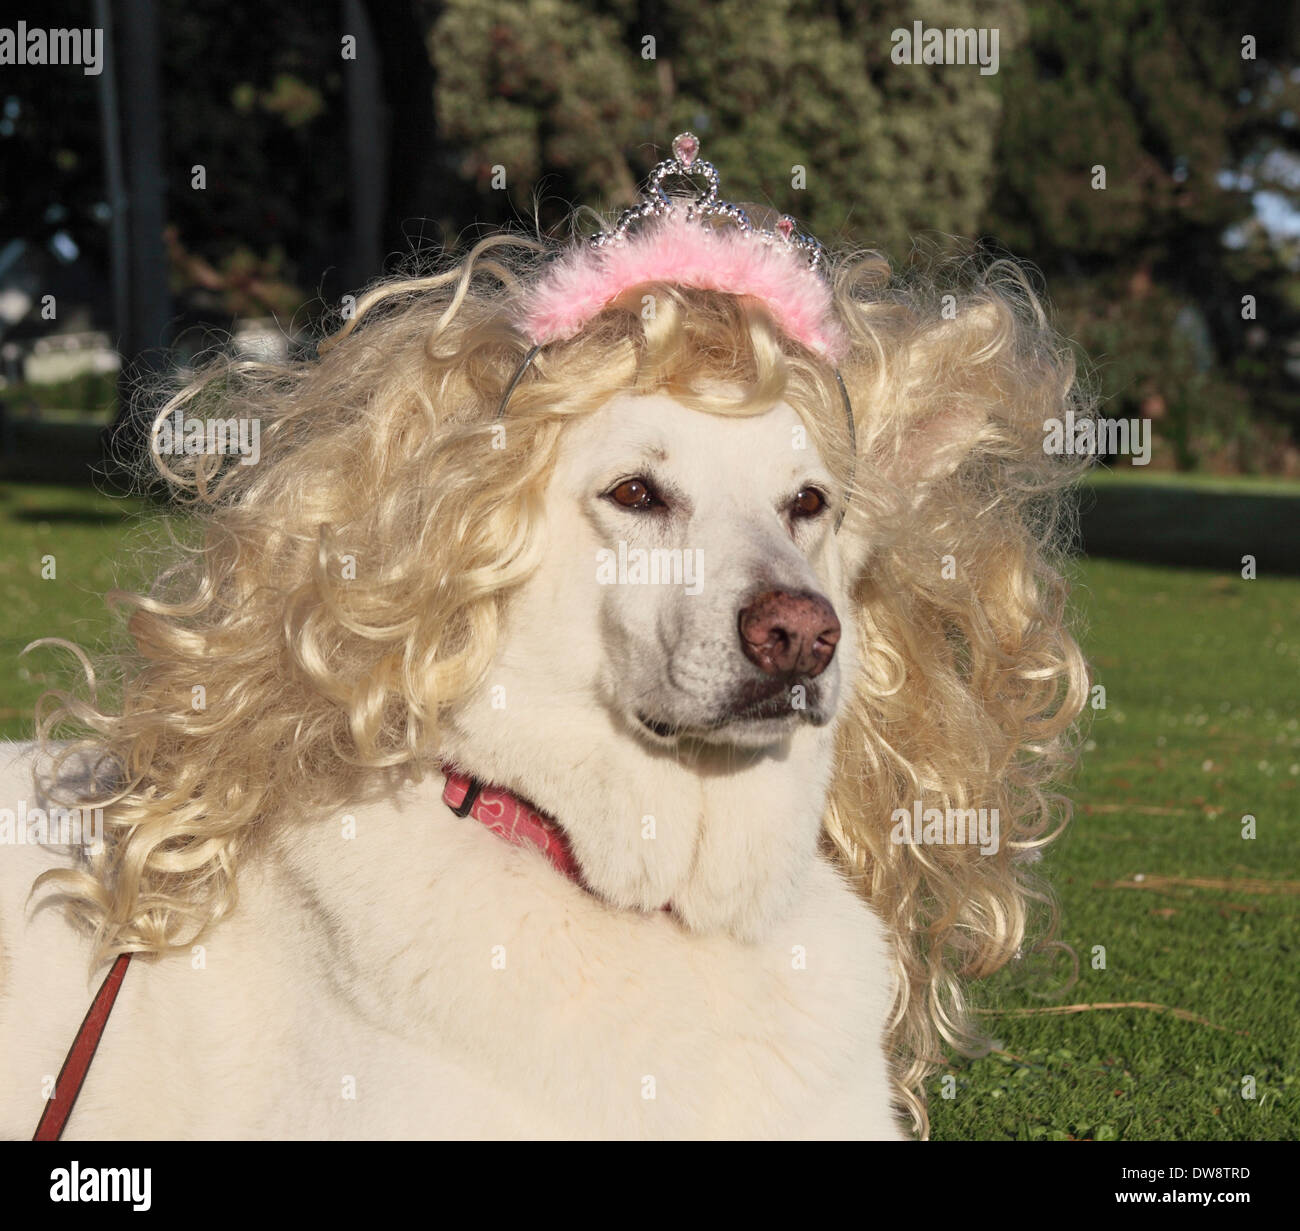 Dog wearing wig and and tiara relaxes on grass - Stock Image